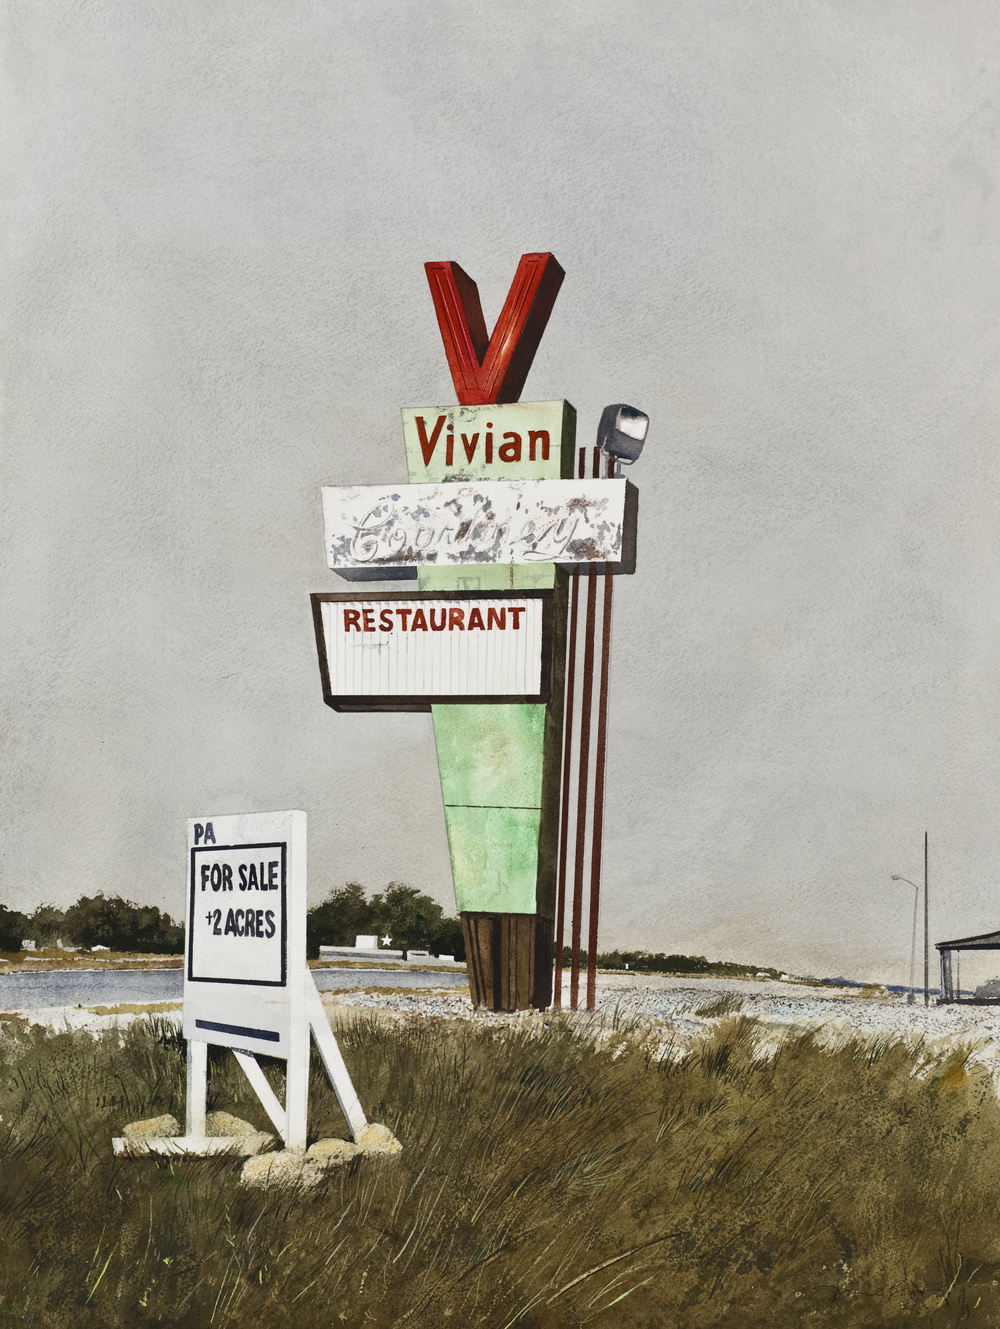 "Daniel Blagg, For Sale, 2012, watercolor on paper, 35 x 27 1/2"". Private Collection, Fort Worth, TX."